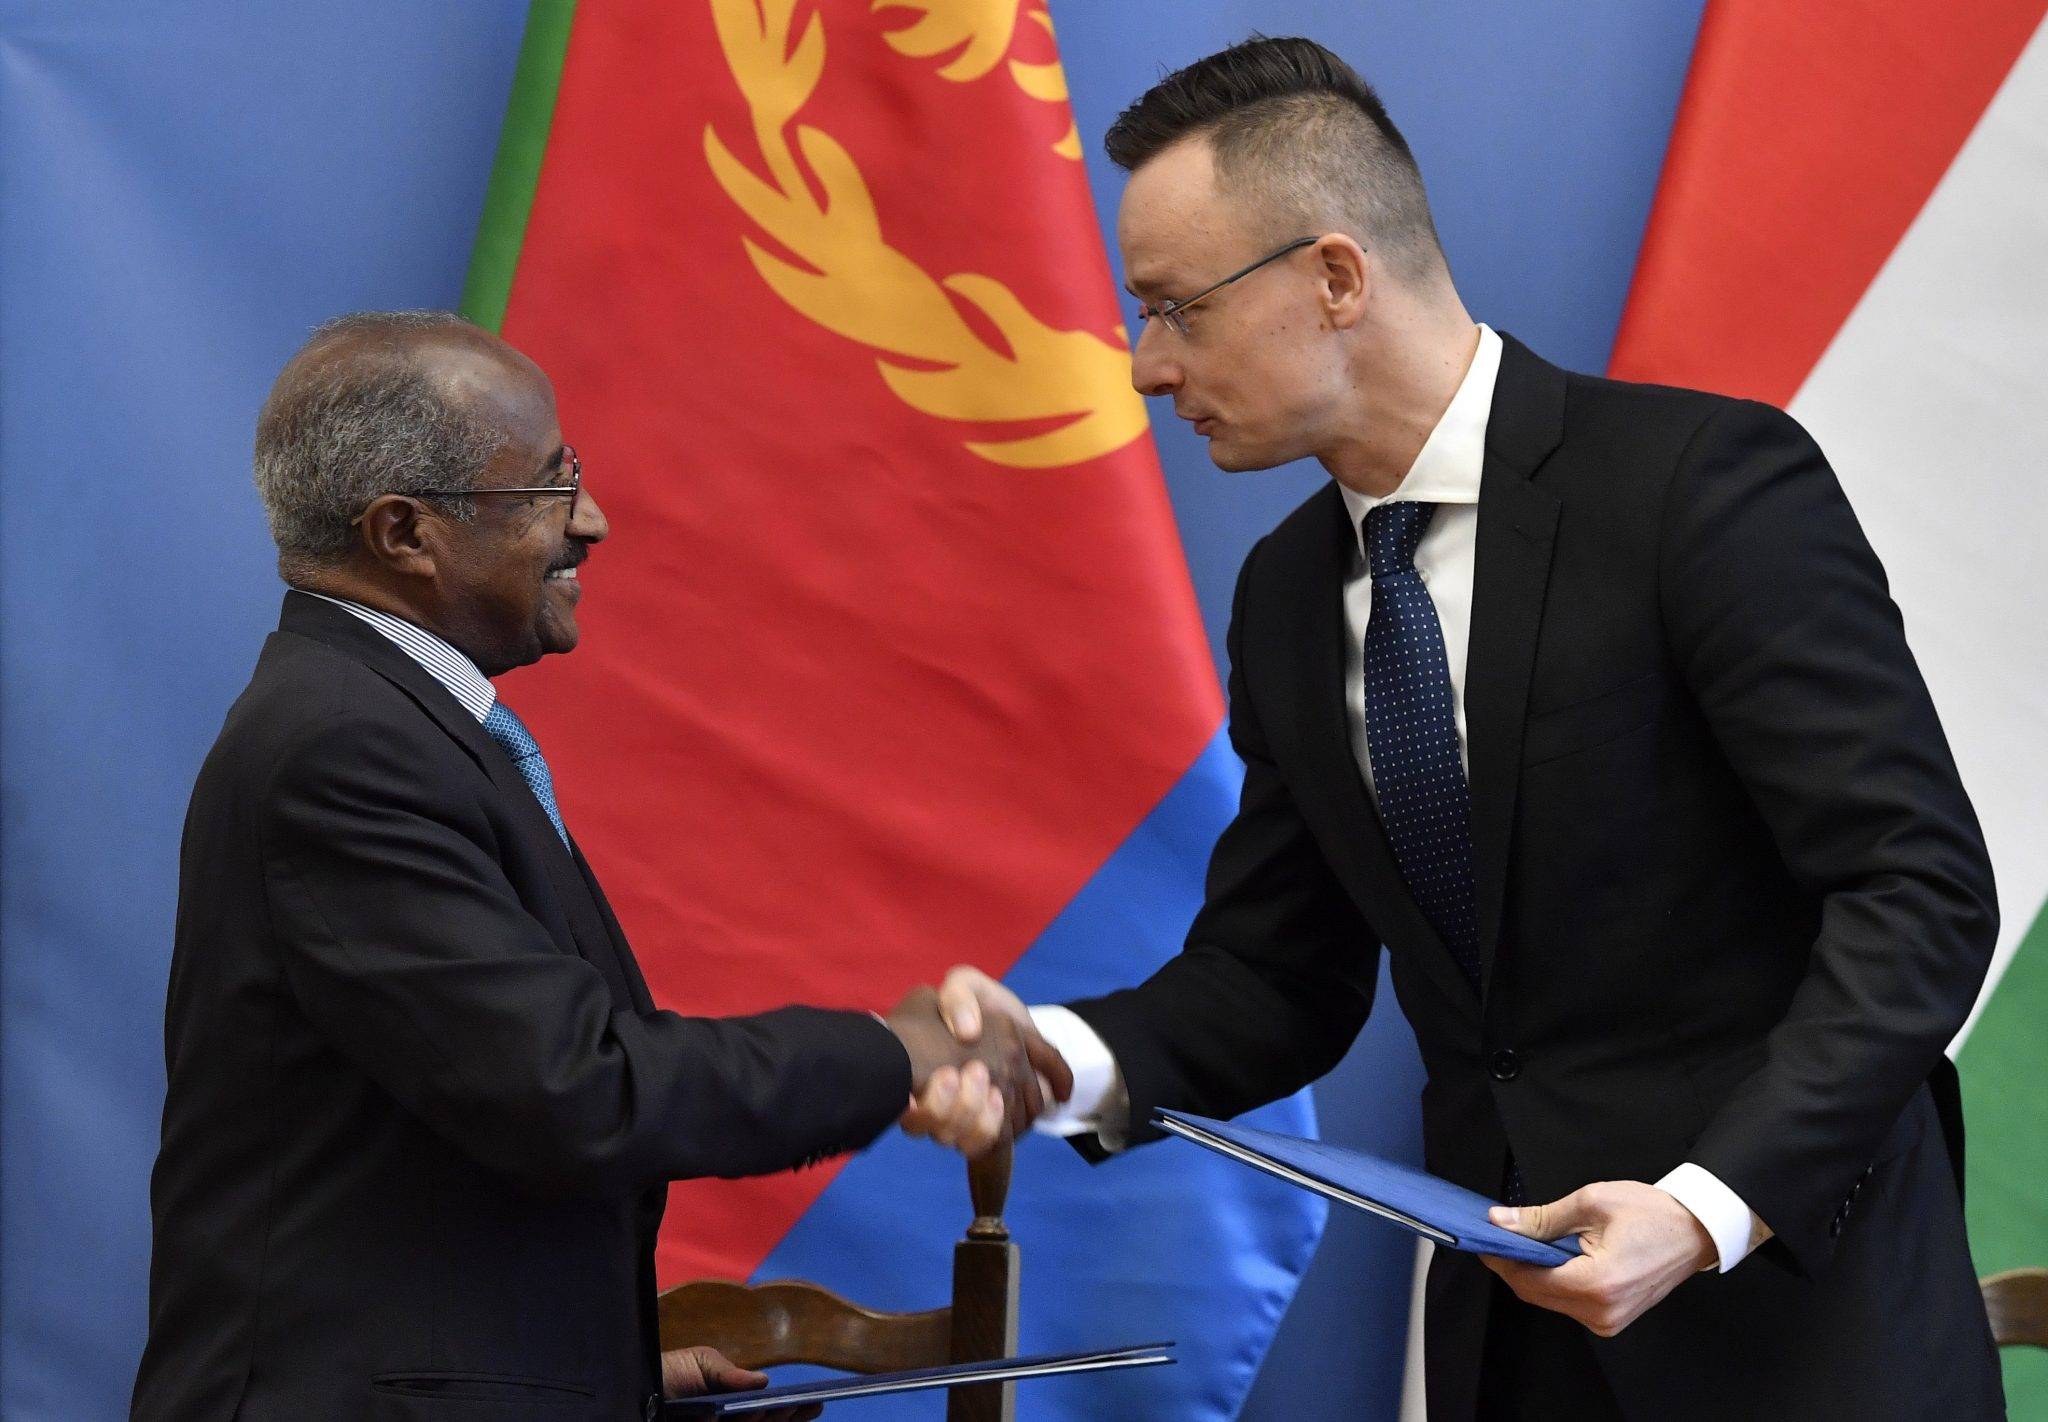 Eritrea and Hungary sign economic and technical cooperation framework agreement